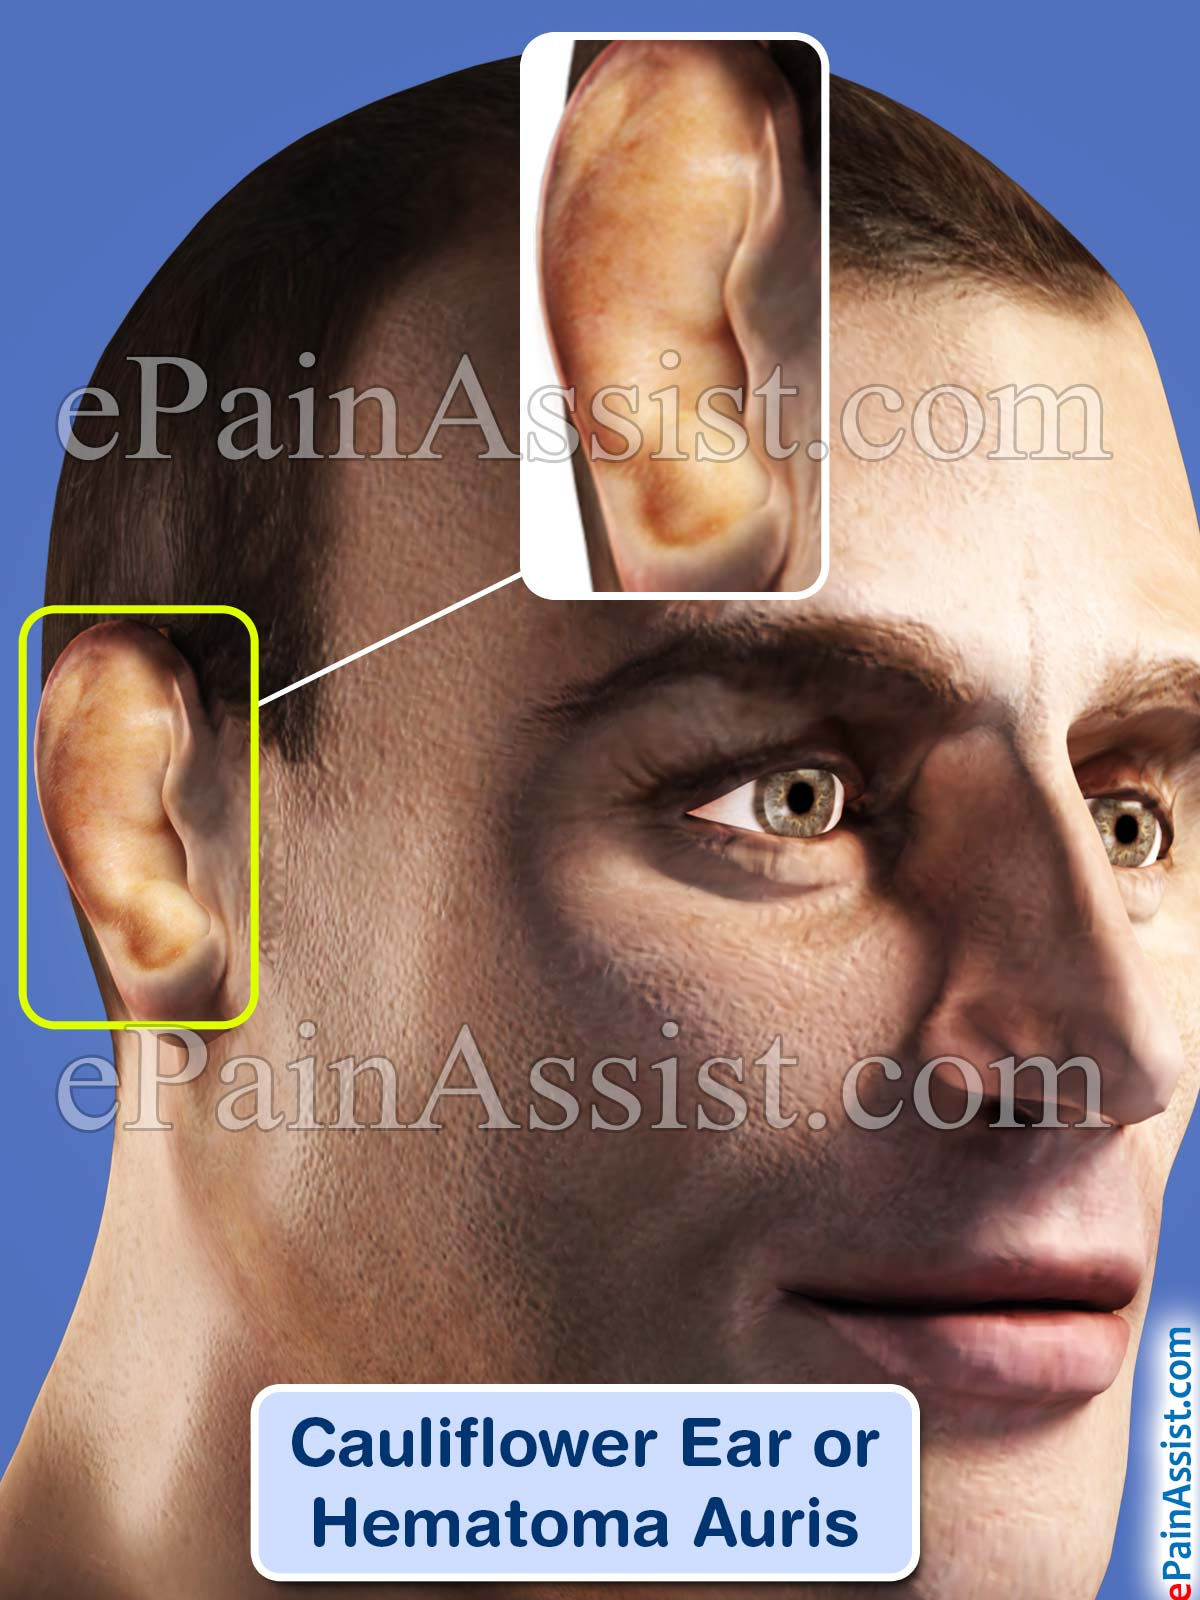 Cauliflower Ear or Hematoma Auris